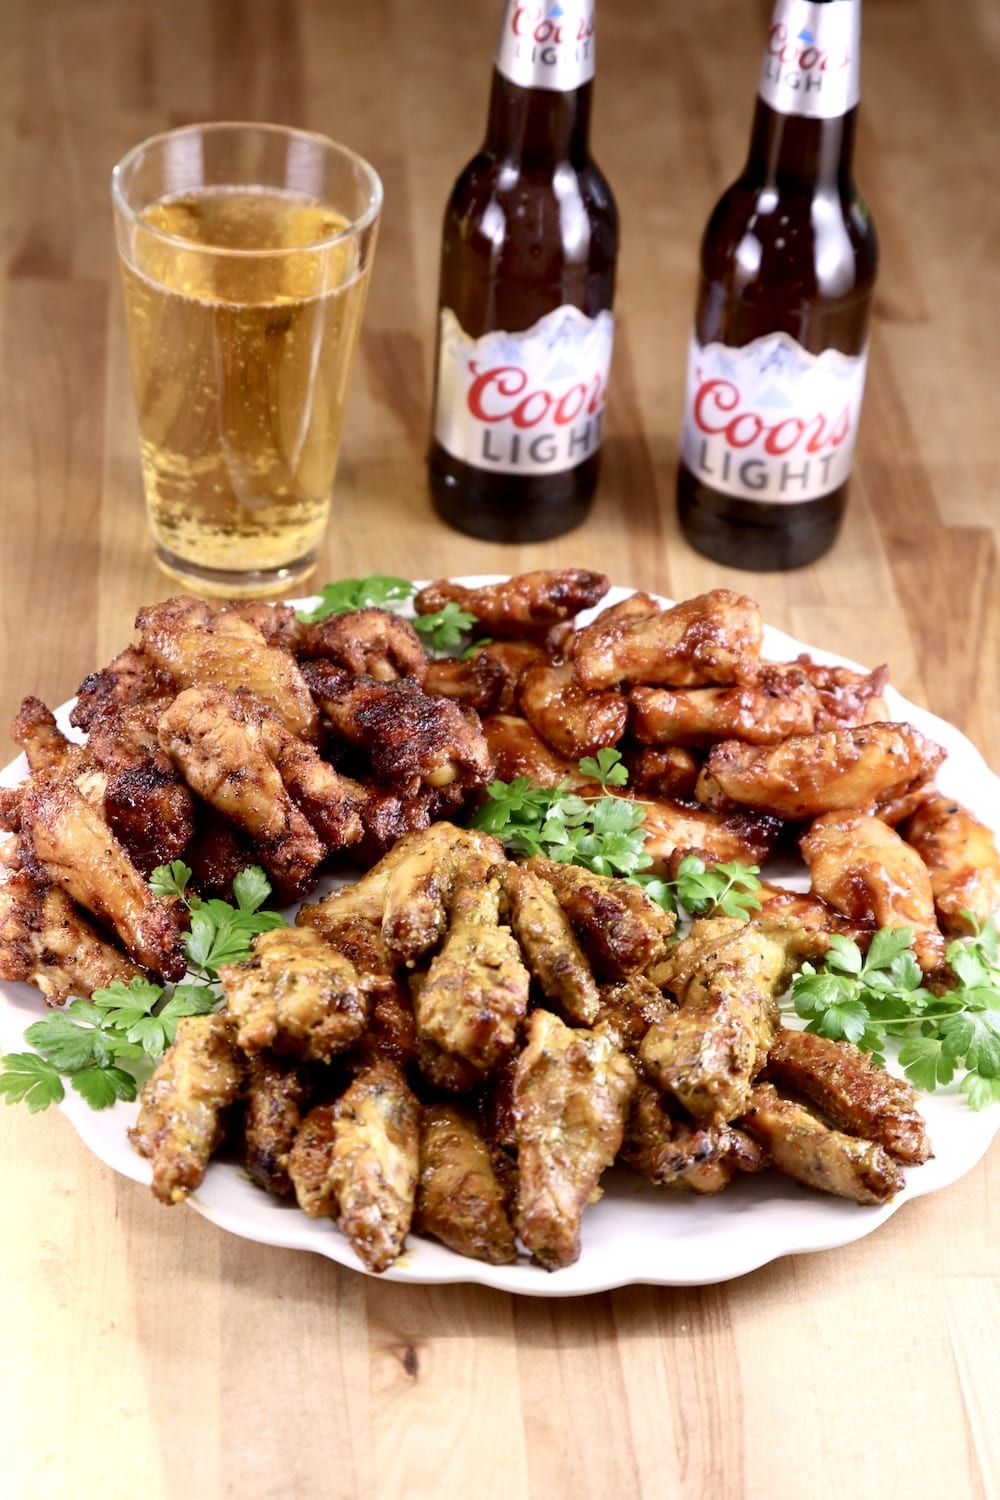 Platter of chicken wings with Coors beer bottles and one glass